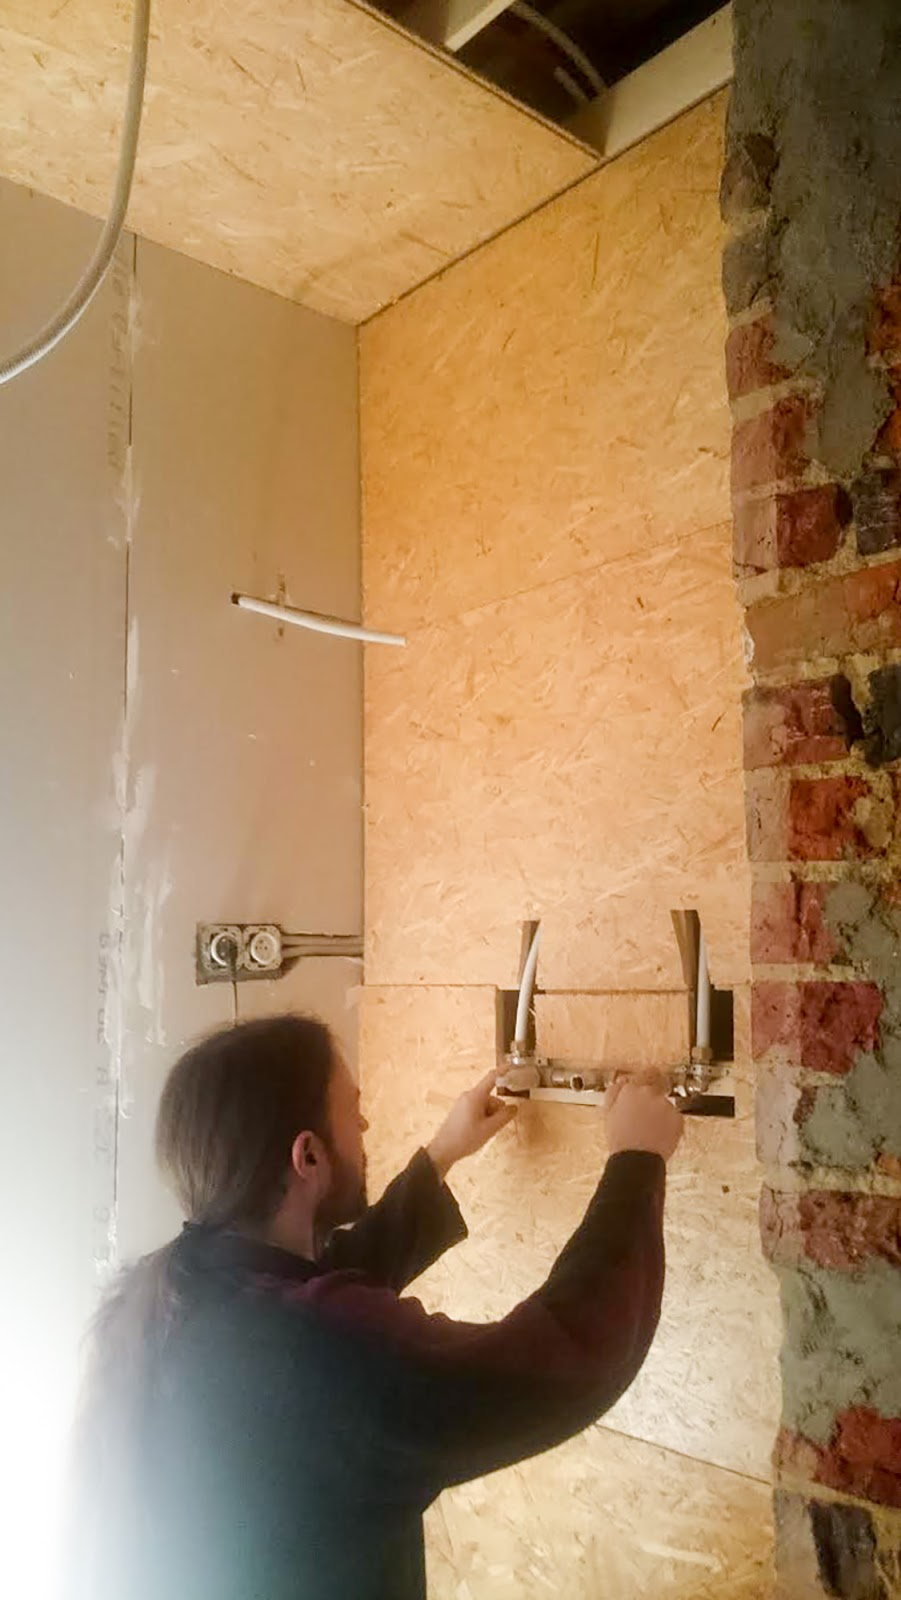 Installing fittings for taps